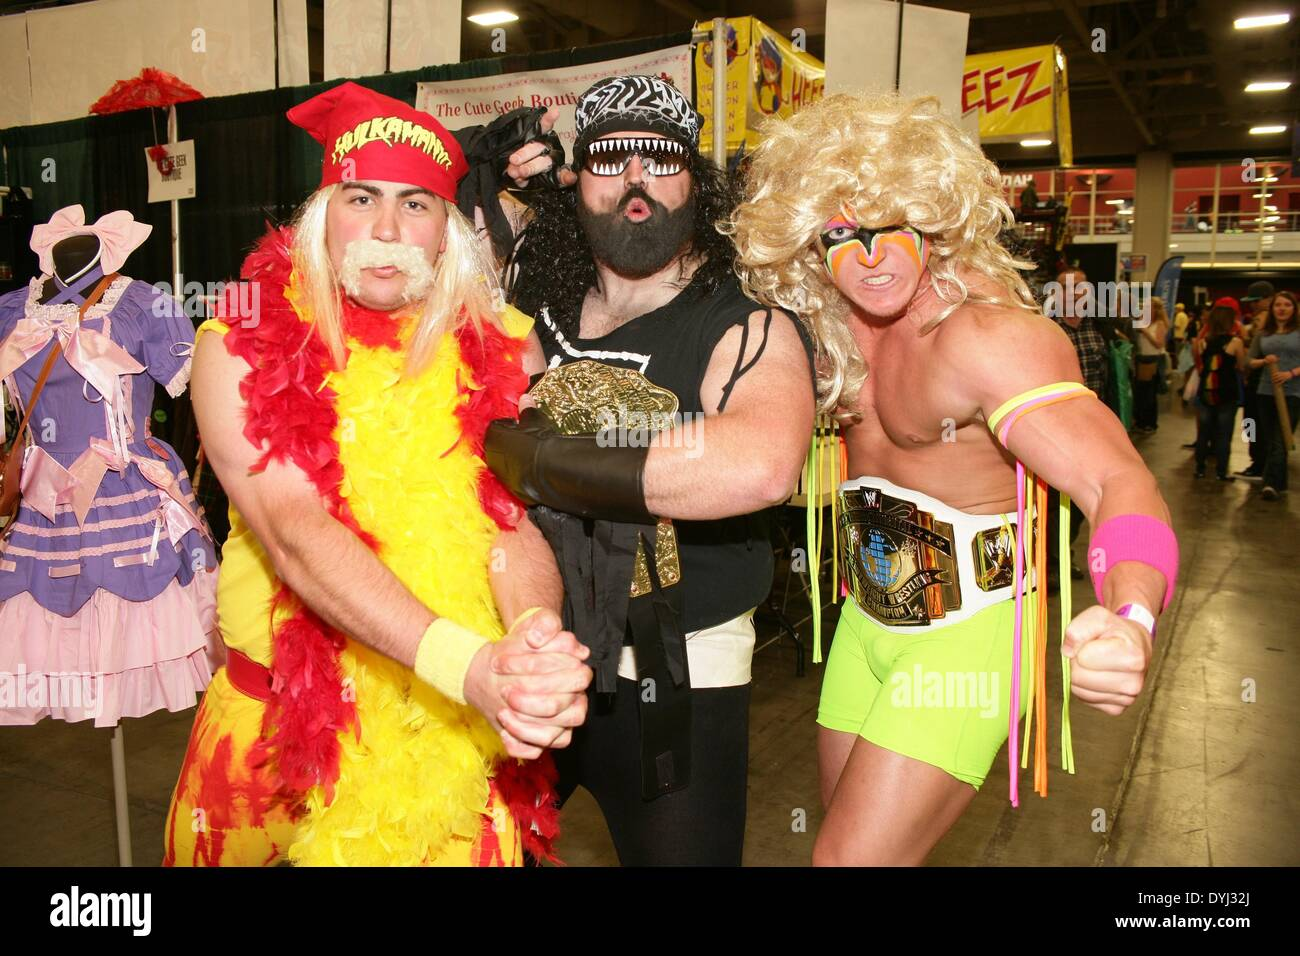 ultimate warrior stock photos & ultimate warrior stock images - alamy